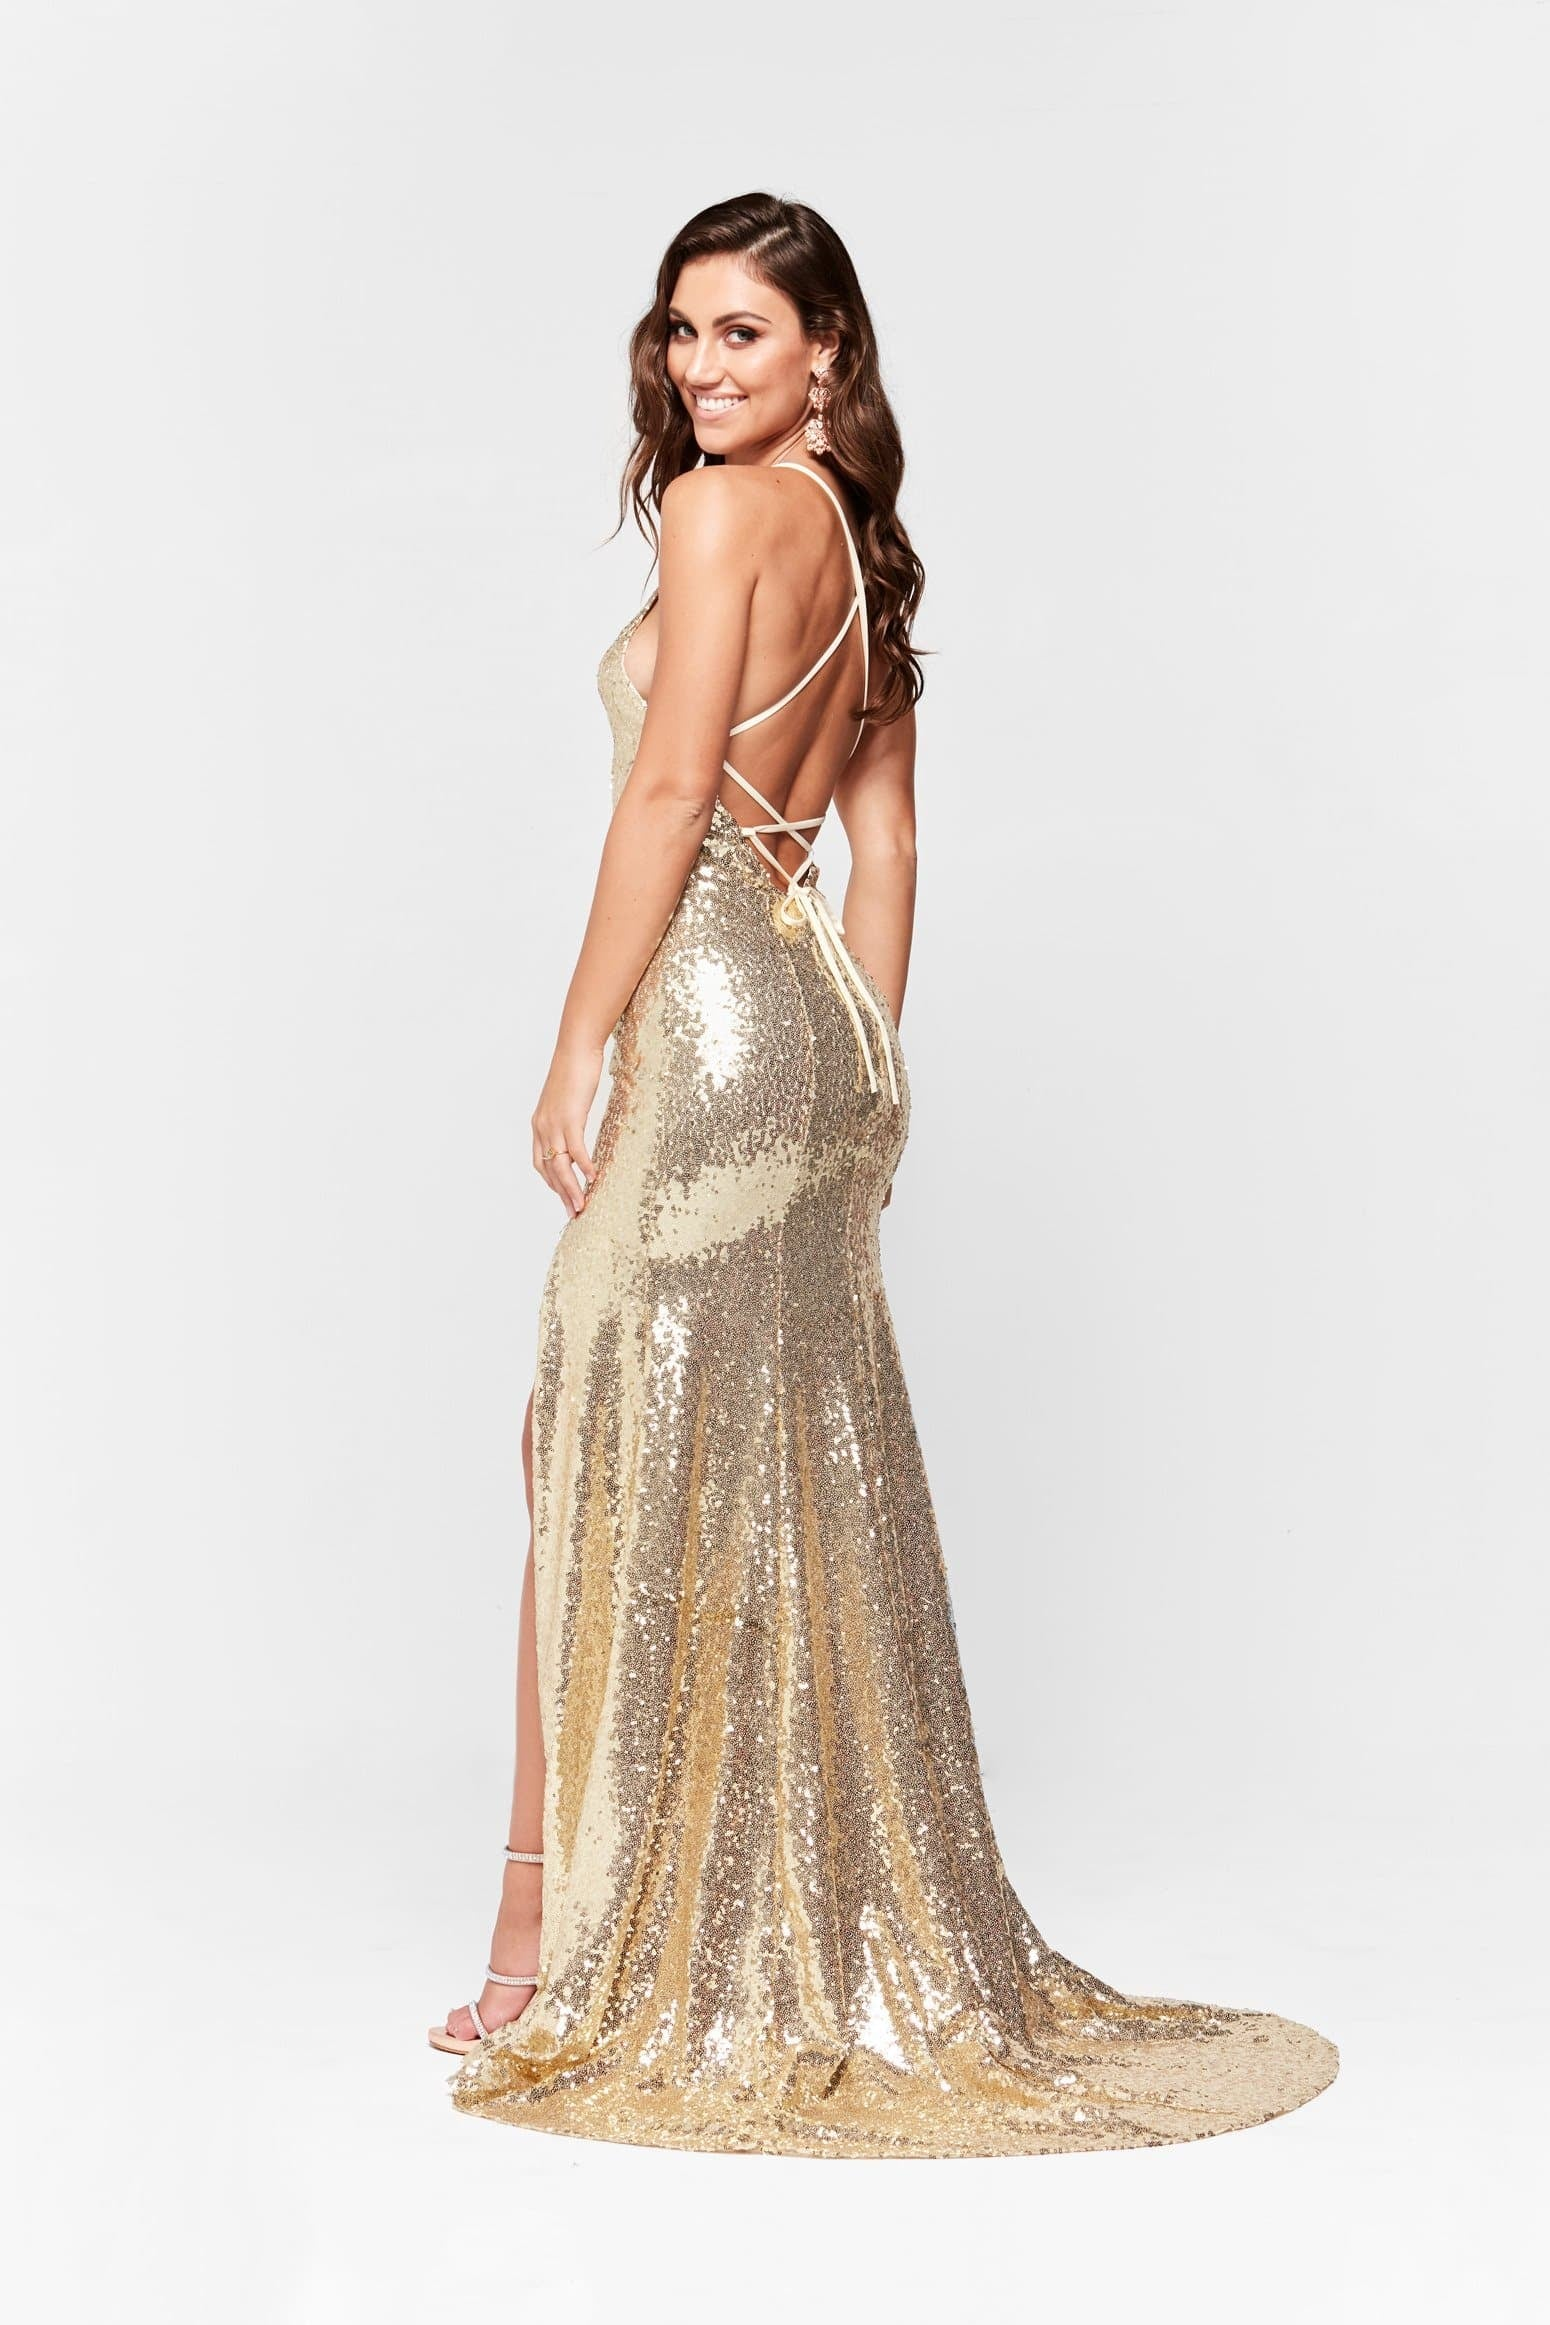 A&N Kara- Gold Sequinned Dress with Slit and Lace Up Back – A&N Luxe ...